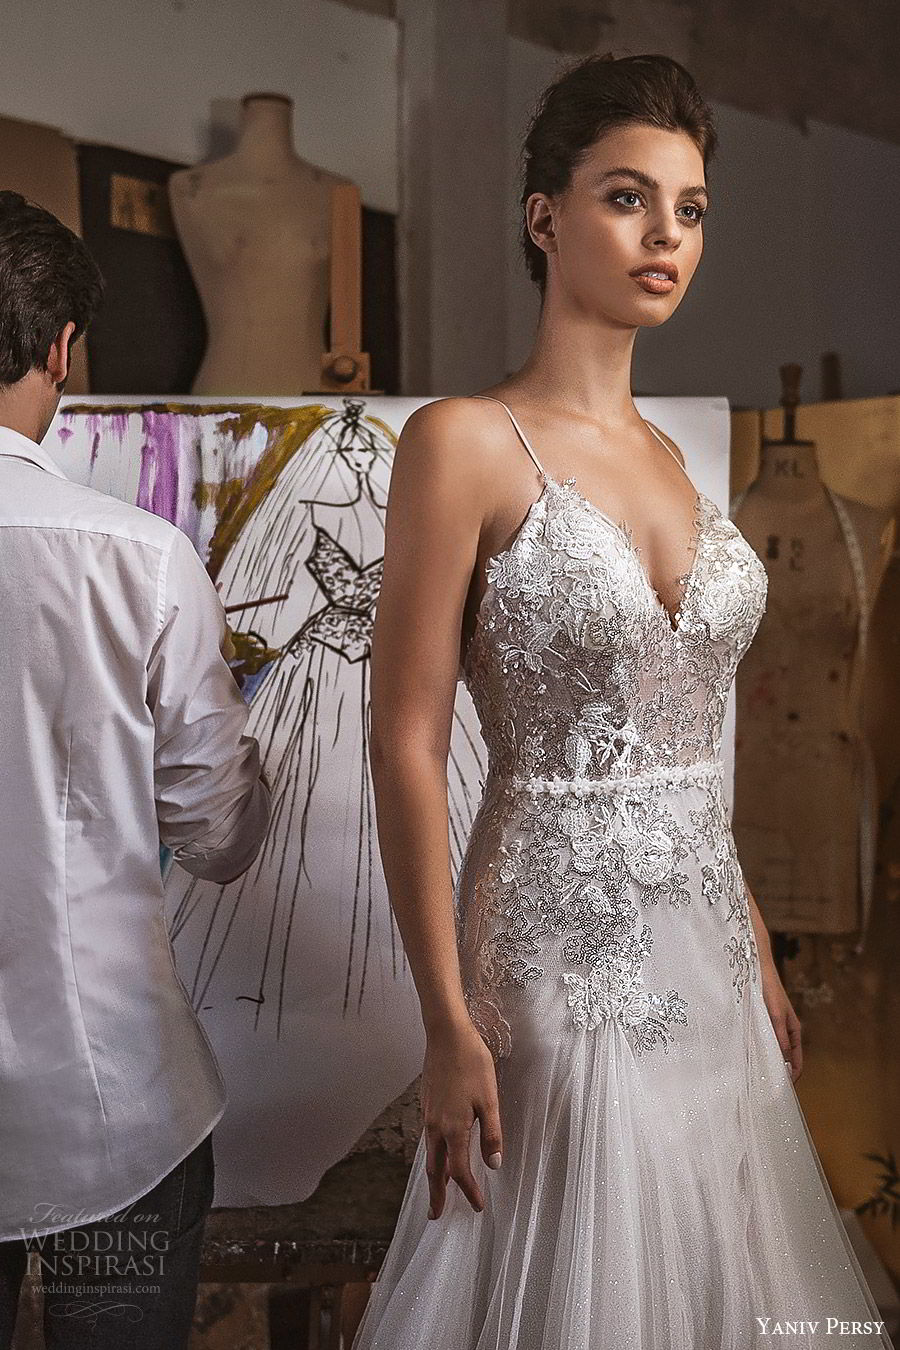 yaniv persy fall 2019 lavish bridal sleeveless thin straps sweetheart heavily embellished fit flare a line wedding dress glitzy elegant glam (8) mv